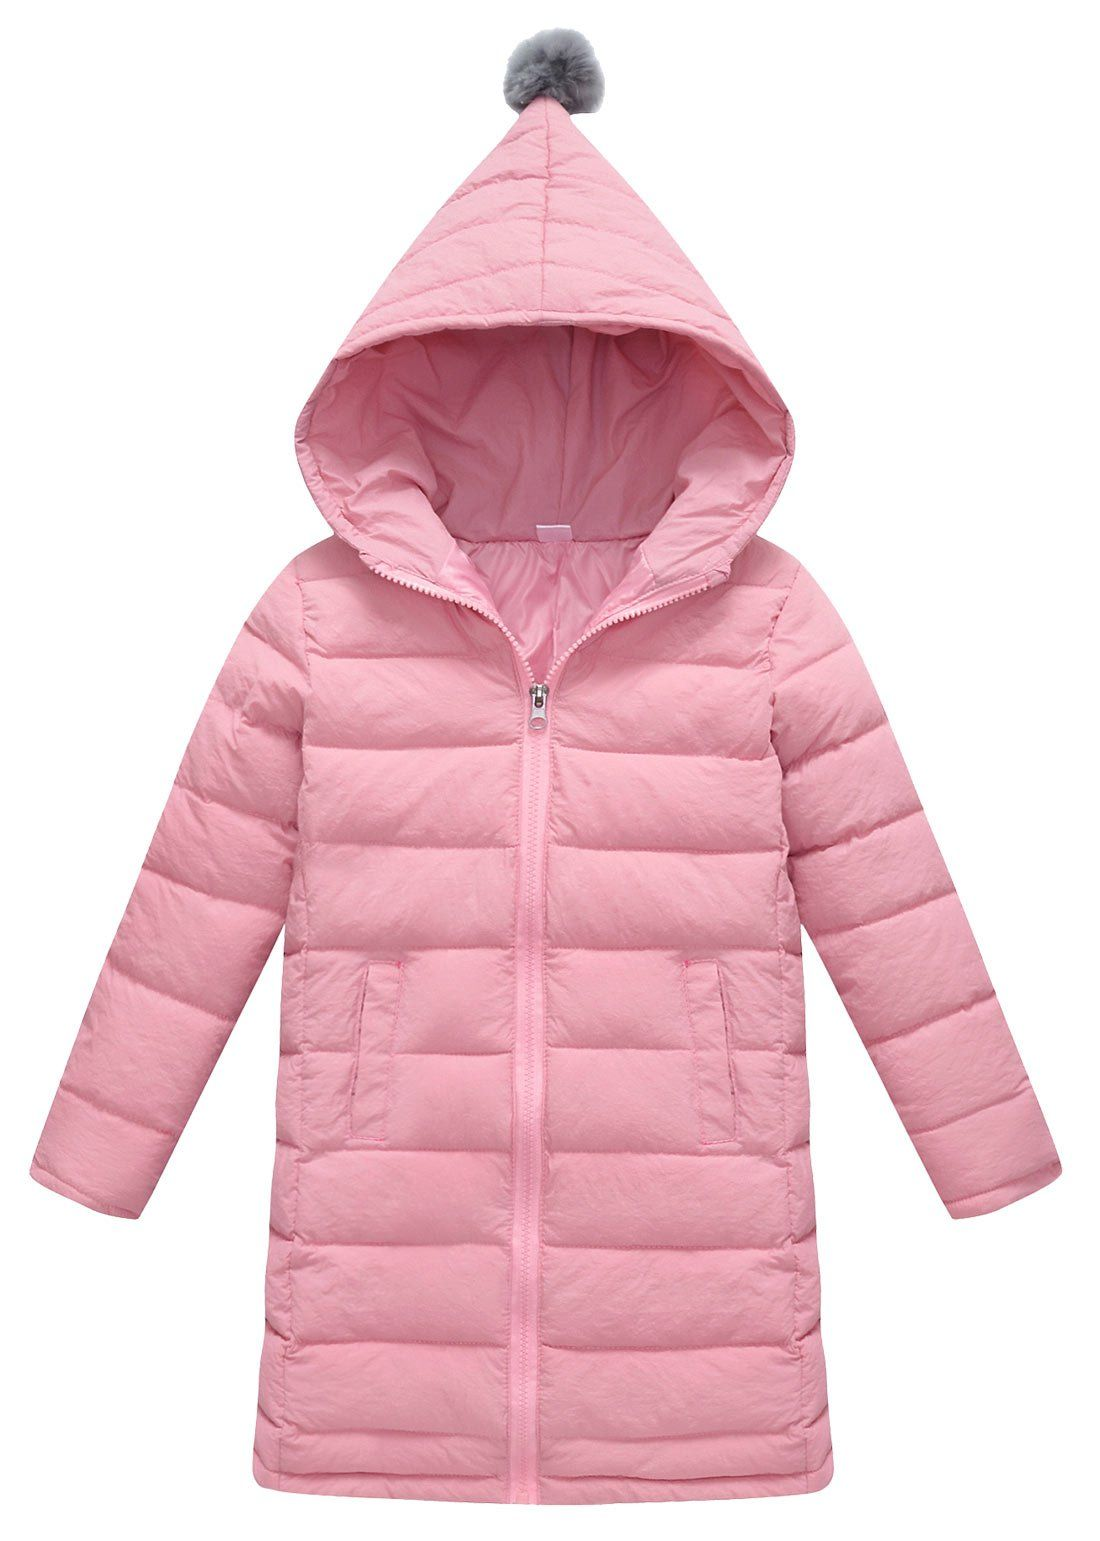 b4d2360a7 Big Girls Warm Winter Outerwear Hooded Lightweight Down Jacket Solid Puffer  Cute Coat Pink 1012Years ** Read more reviews of the product by visiting  the ...